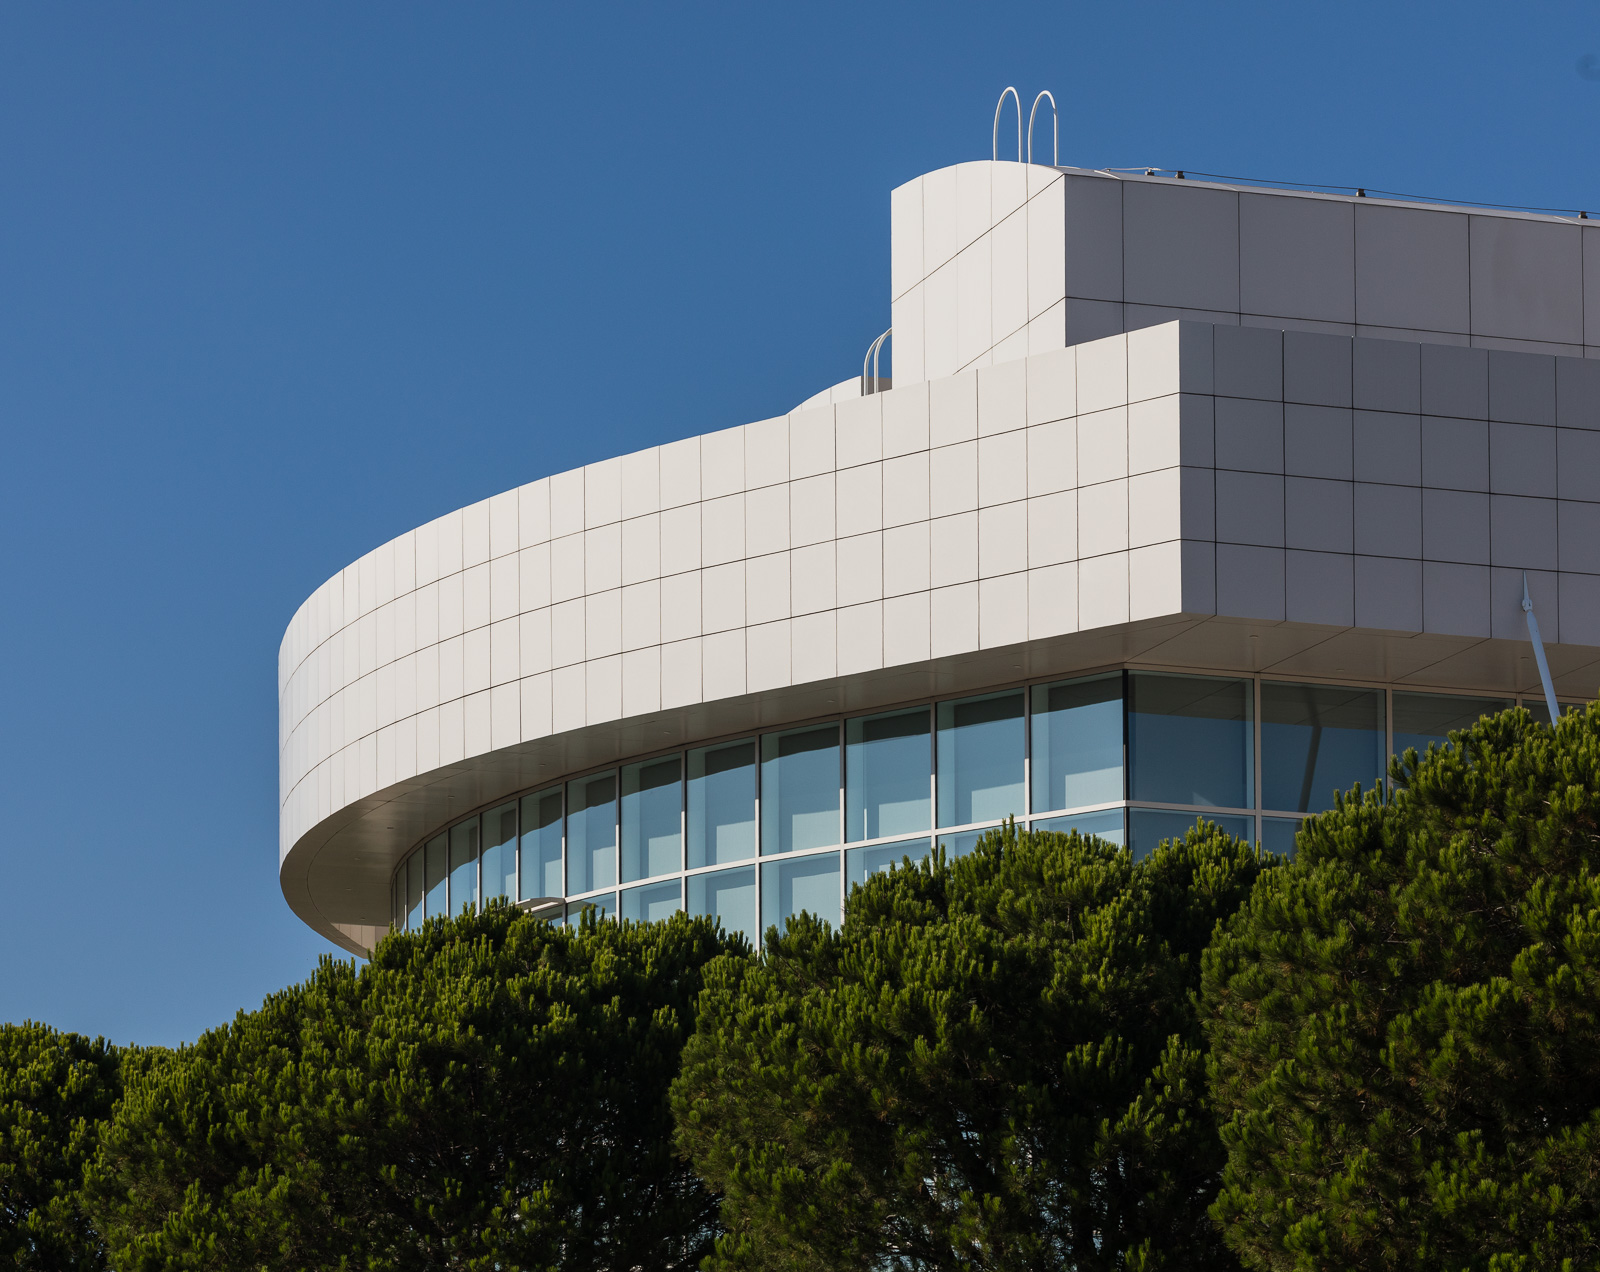 Amazing architecture of the Getty Museum in Los Angeles, California